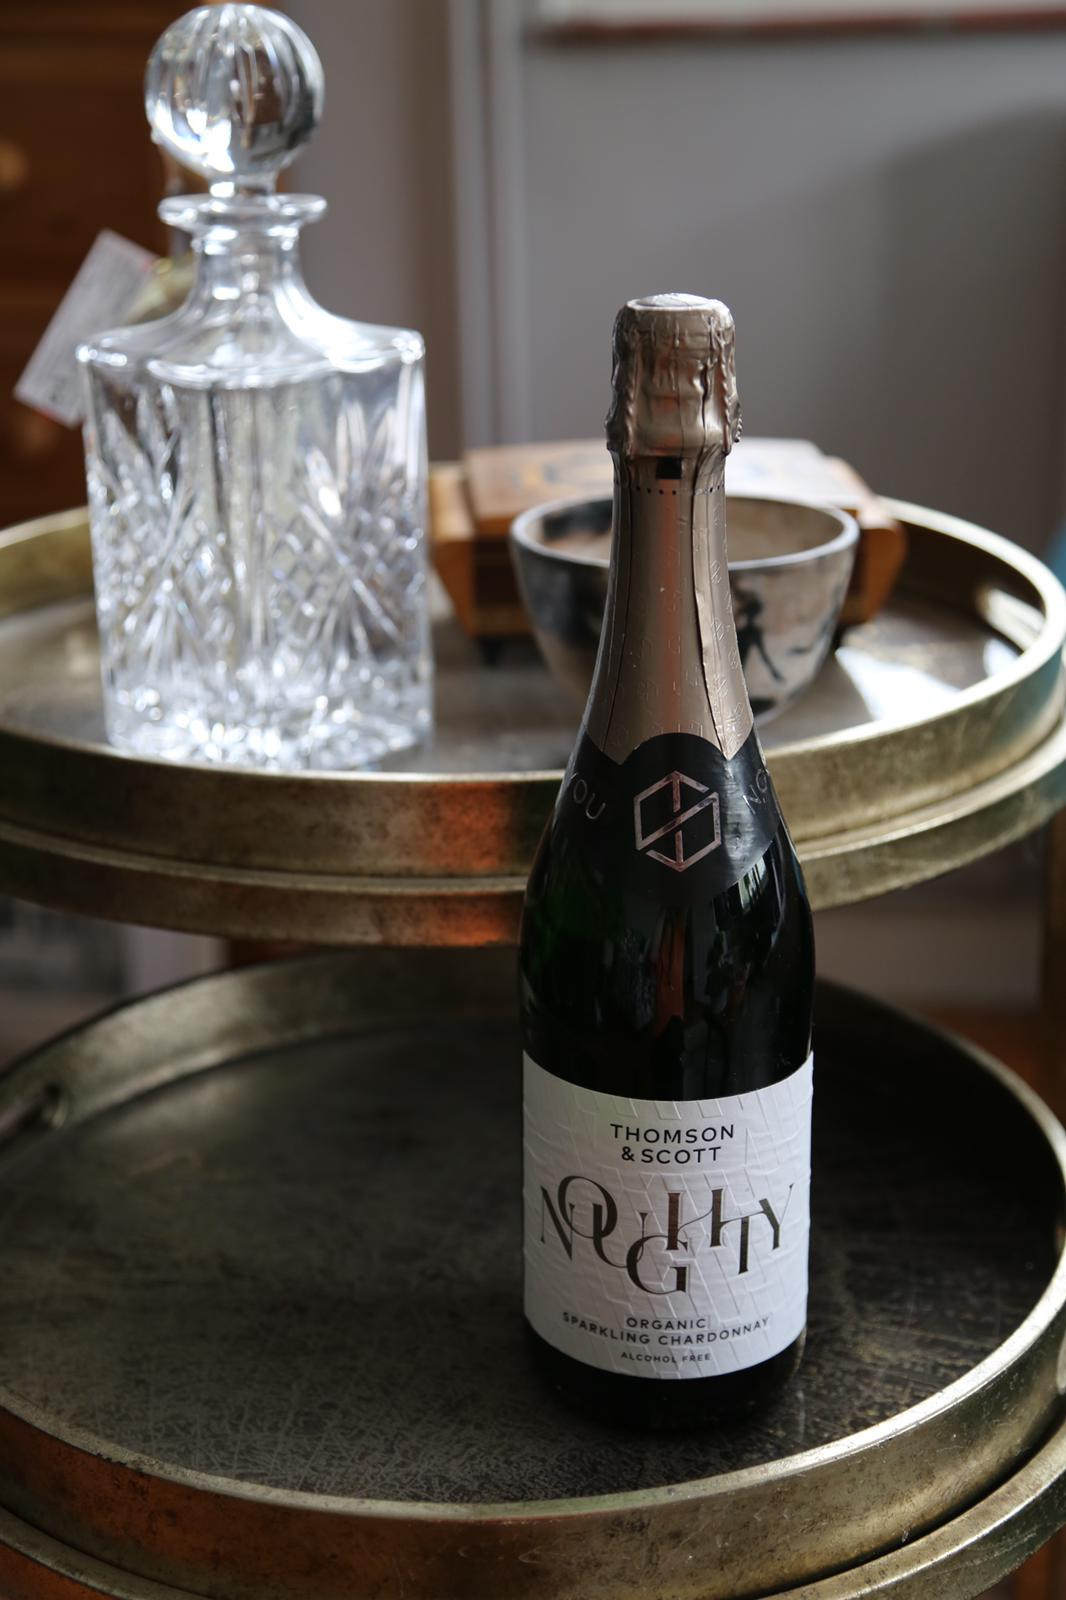 Sloan! Magazine has highlighted Noughty as its go-to sparkling non-alcoholic in this month's edition.